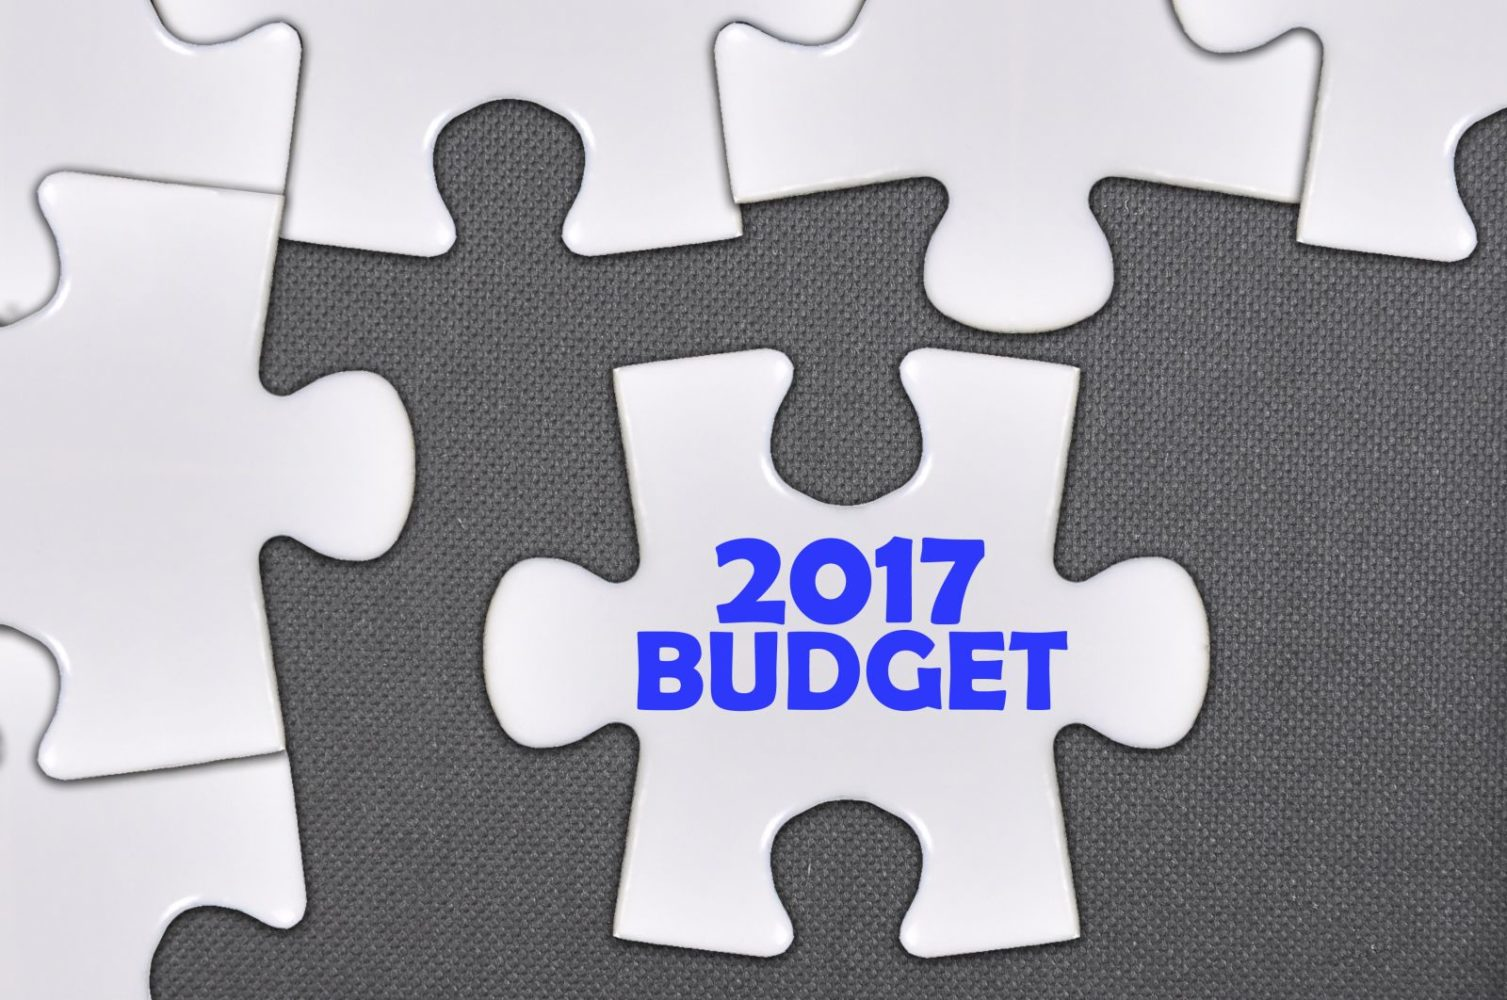 Fiscal Year '17 Budget proposal focus of Richmond meeting